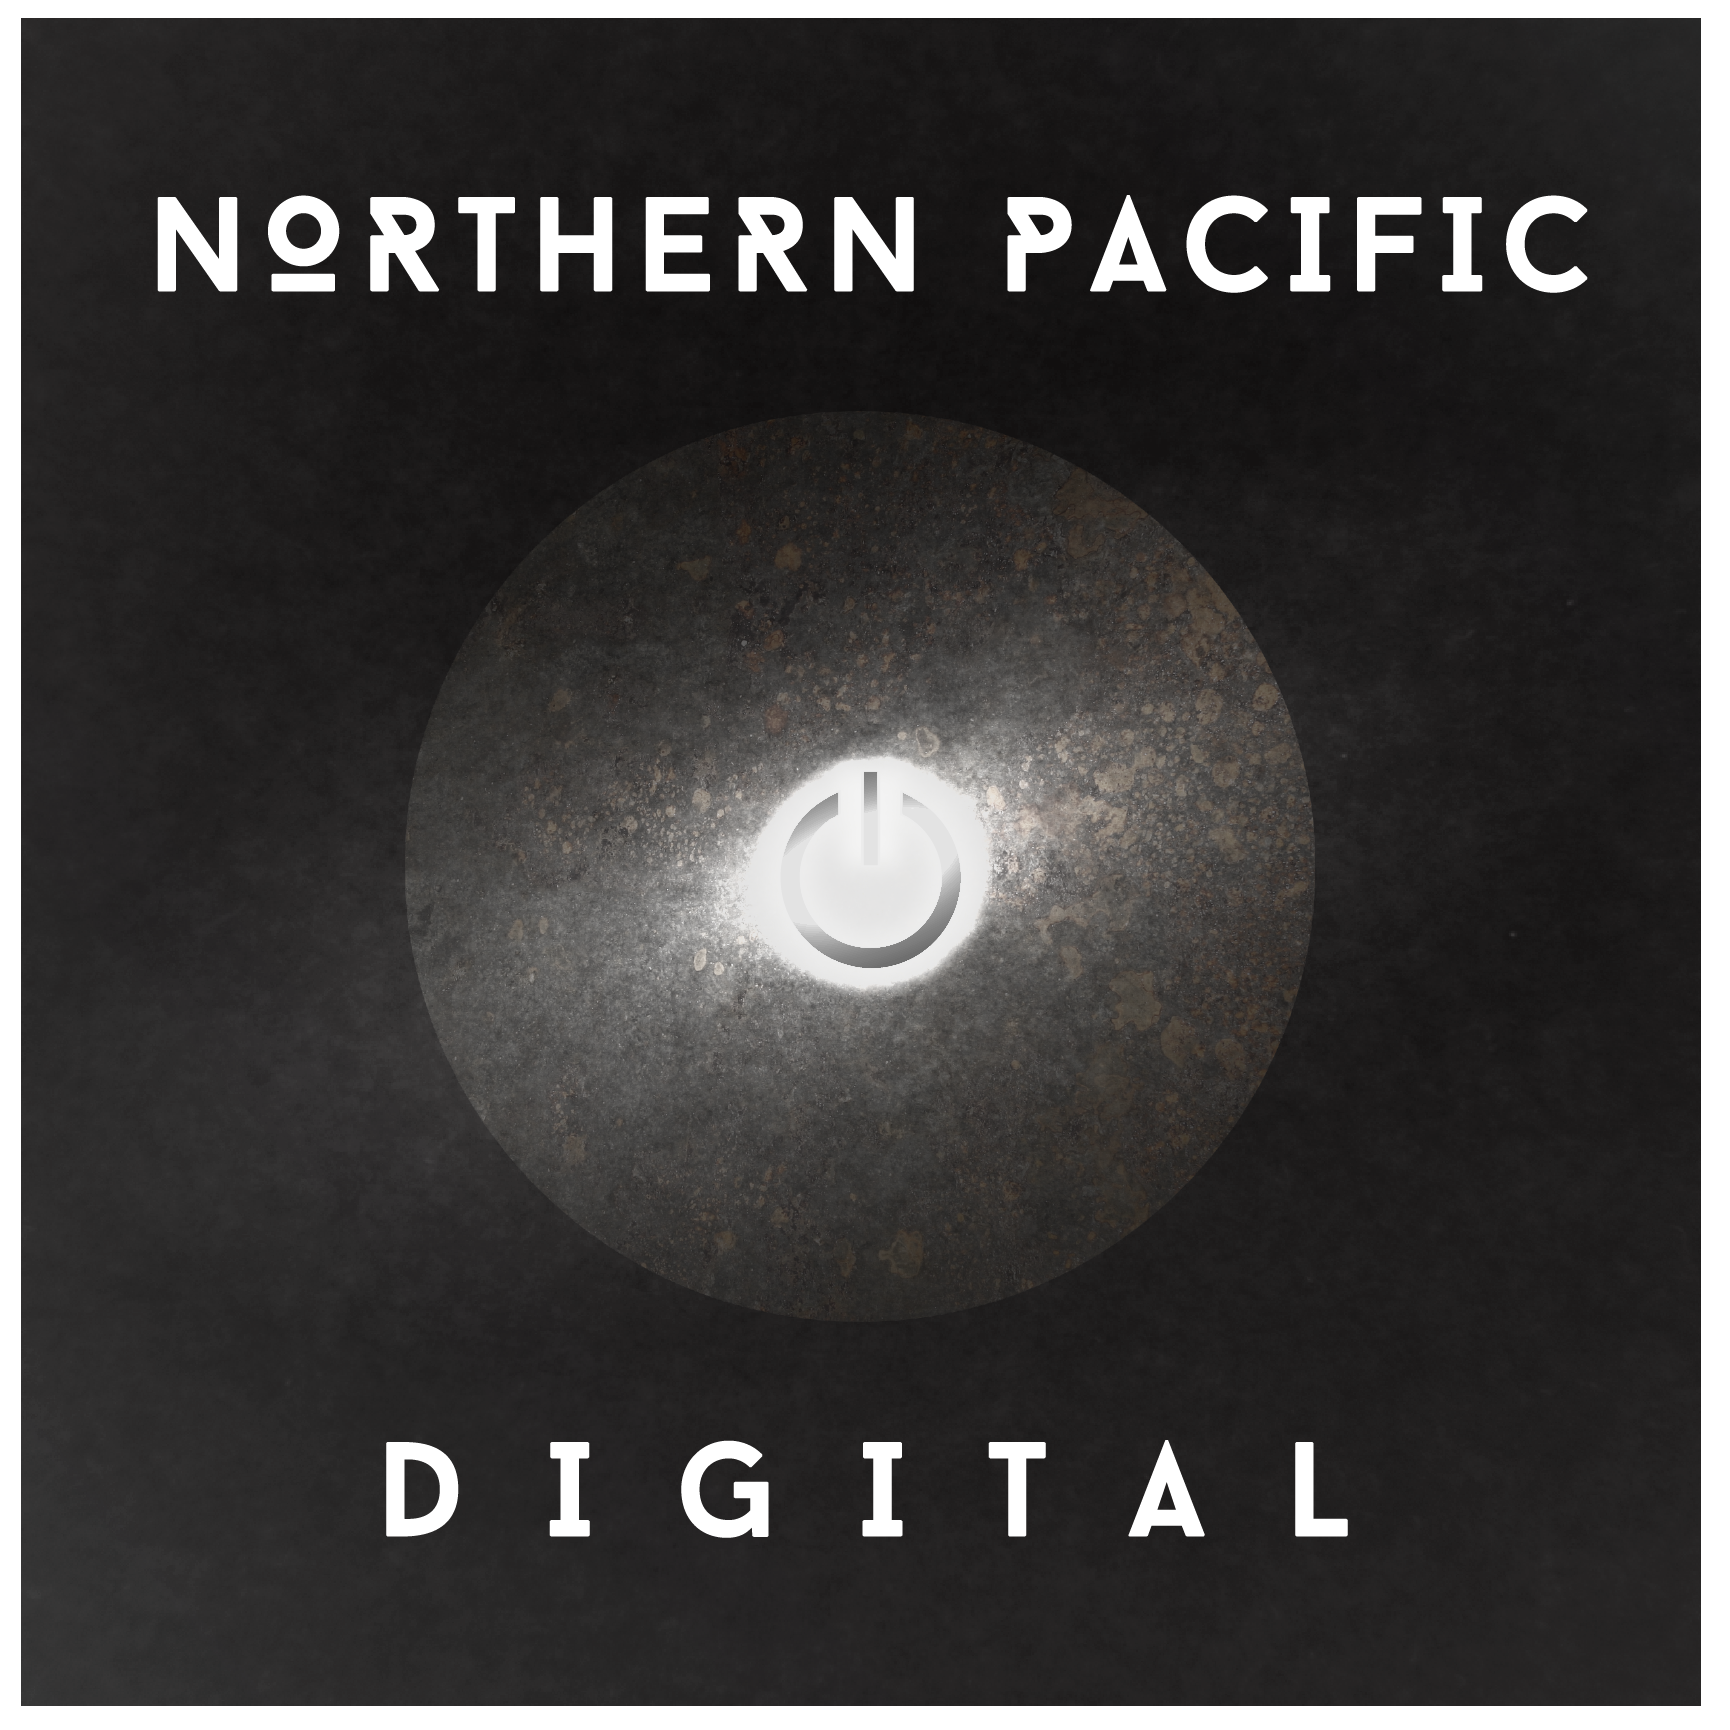 Northern Pacific Digital image 0